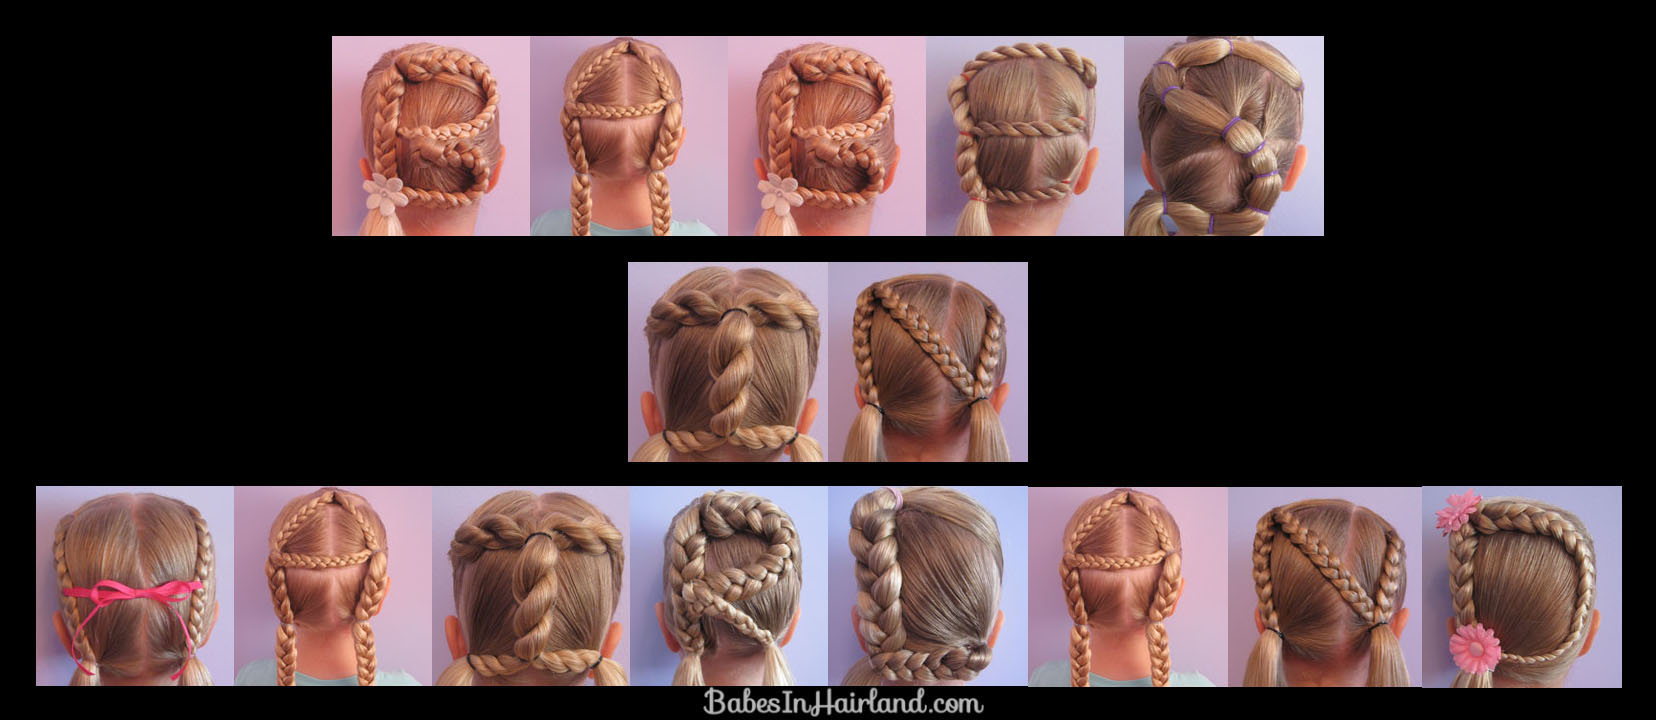 ABC Hairstyles (1)